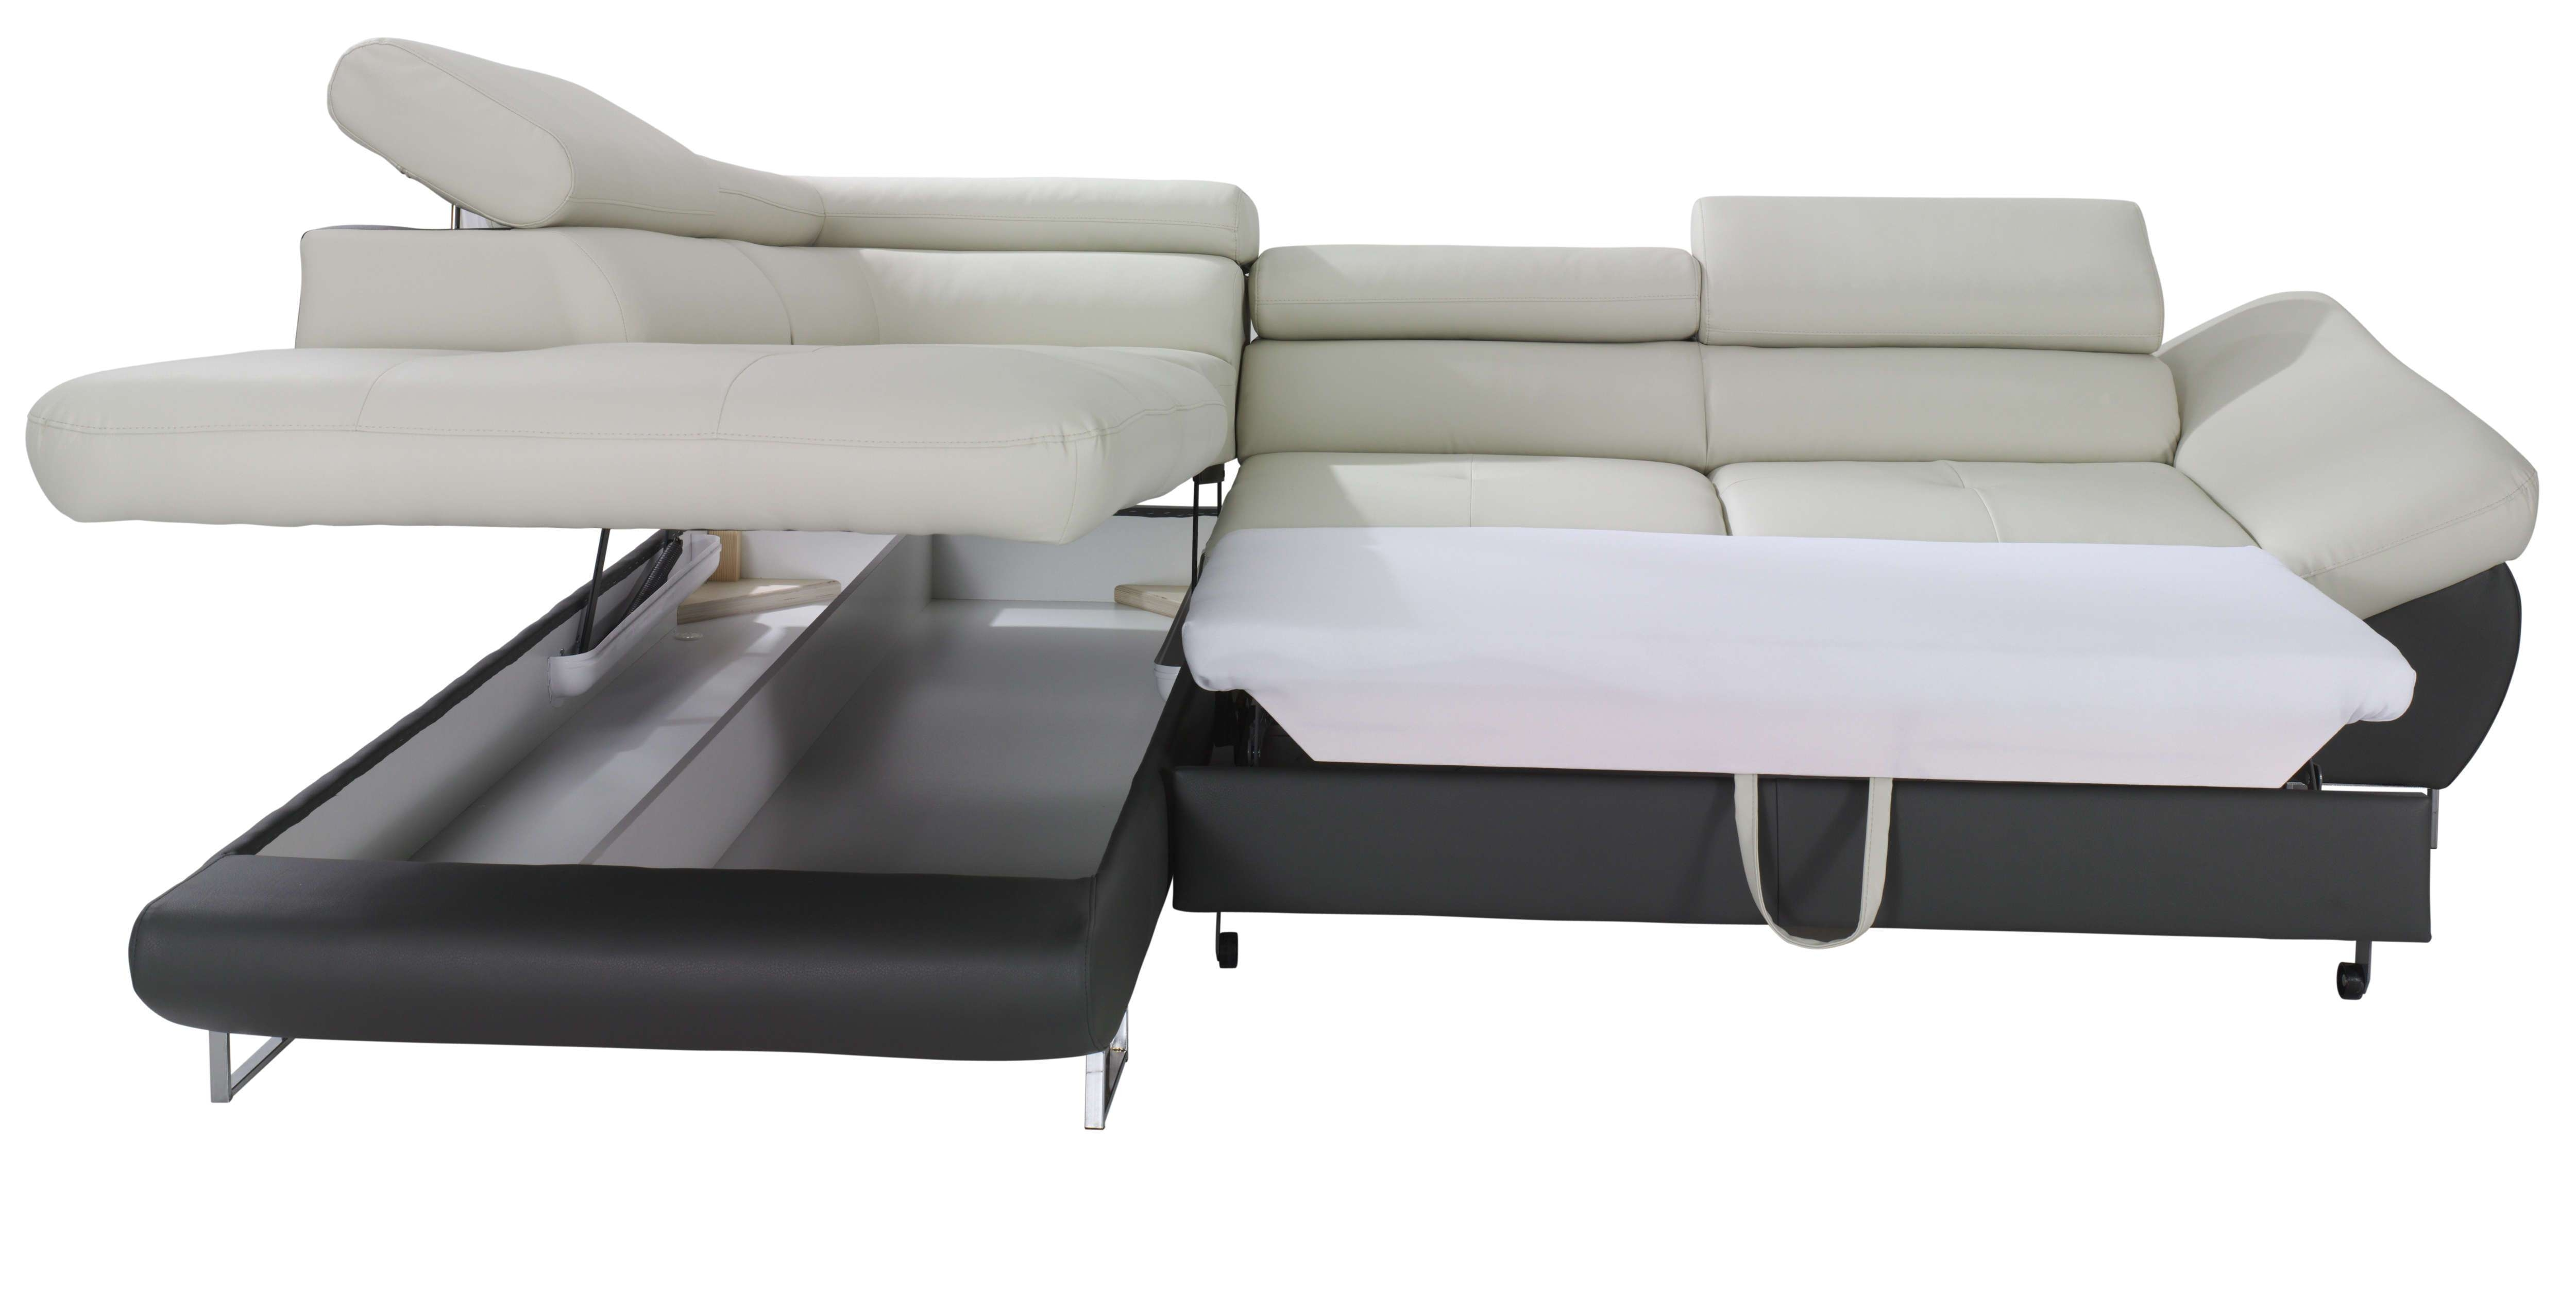 Perfect King Size Sleeper Sofa 76 On Sofas And Couches Set With King Regarding King Size Sleeper Sofas (View 3 of 10)